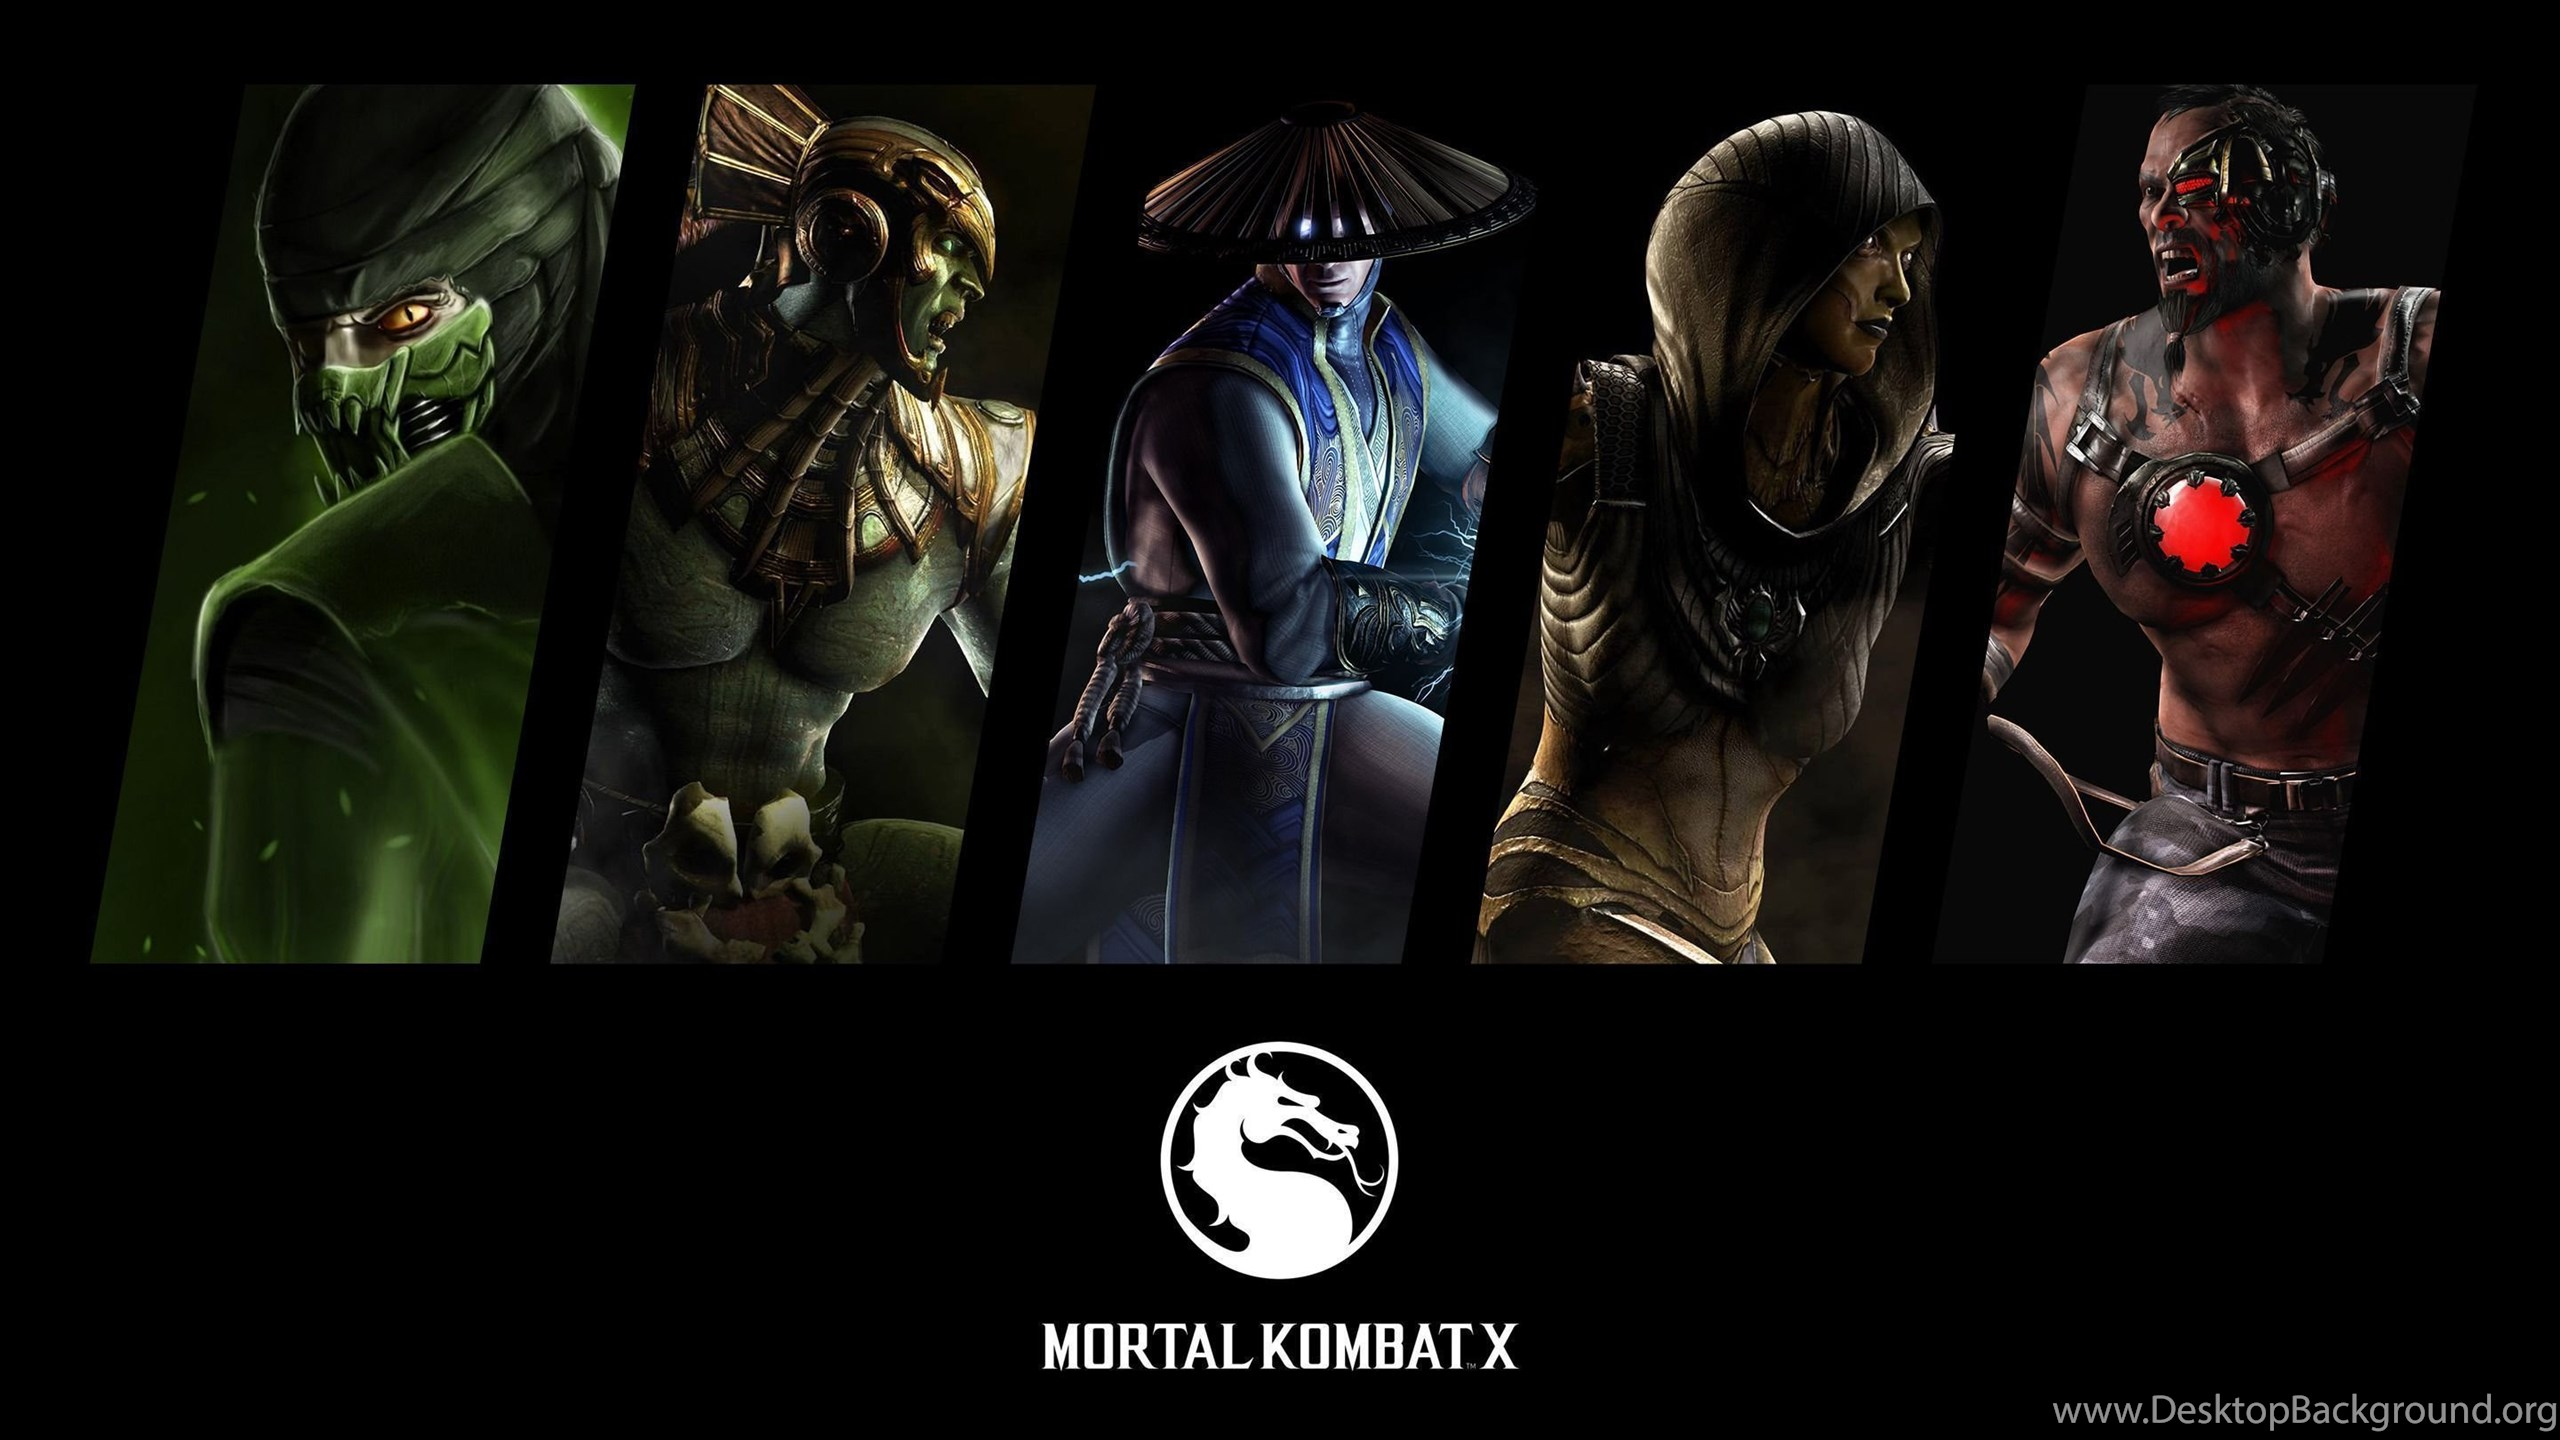 Sub Zero Mortal Kombat X Wallpapers Game Wallpapers Desktop Background